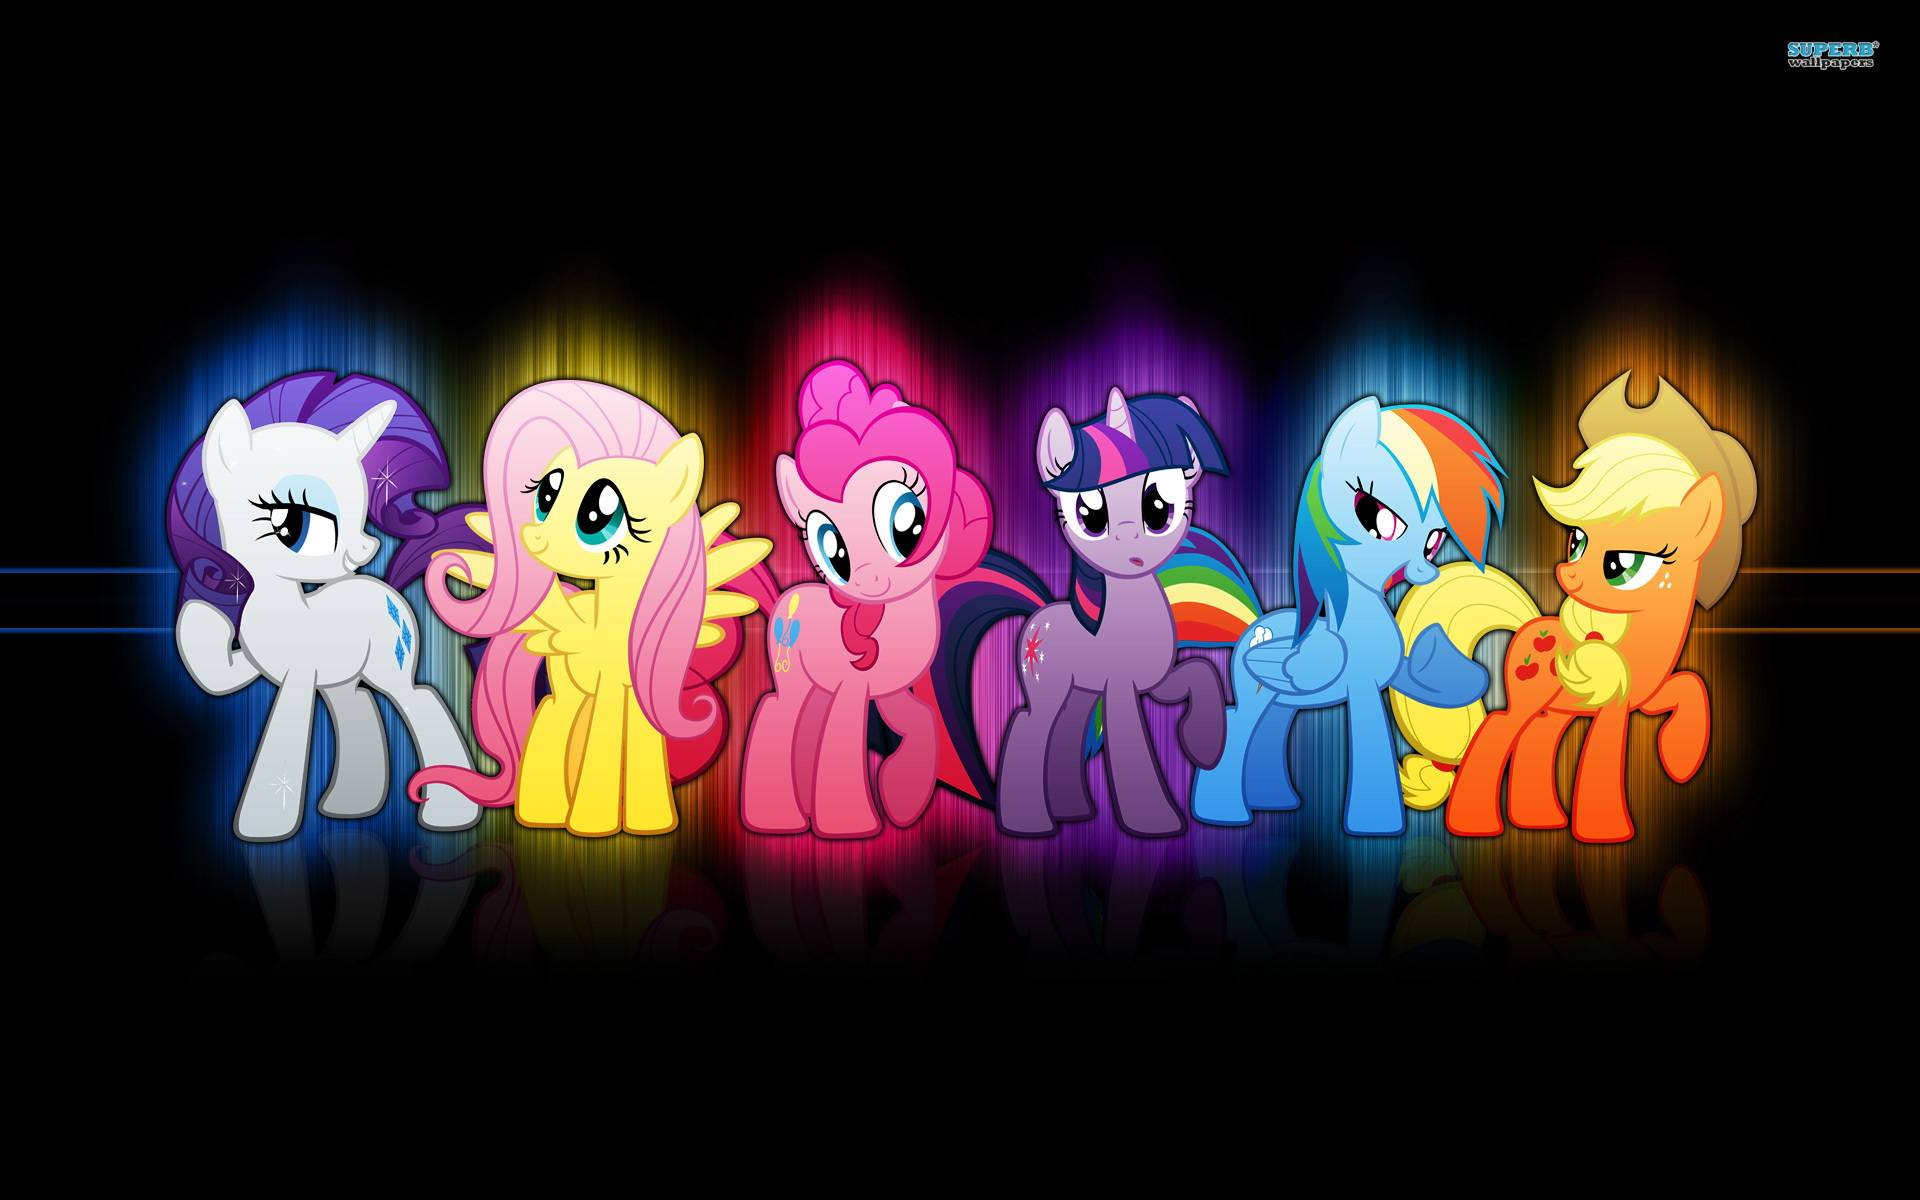 Neon Wallpaper Cool neon wallpaper with the main ponies 1920x1200